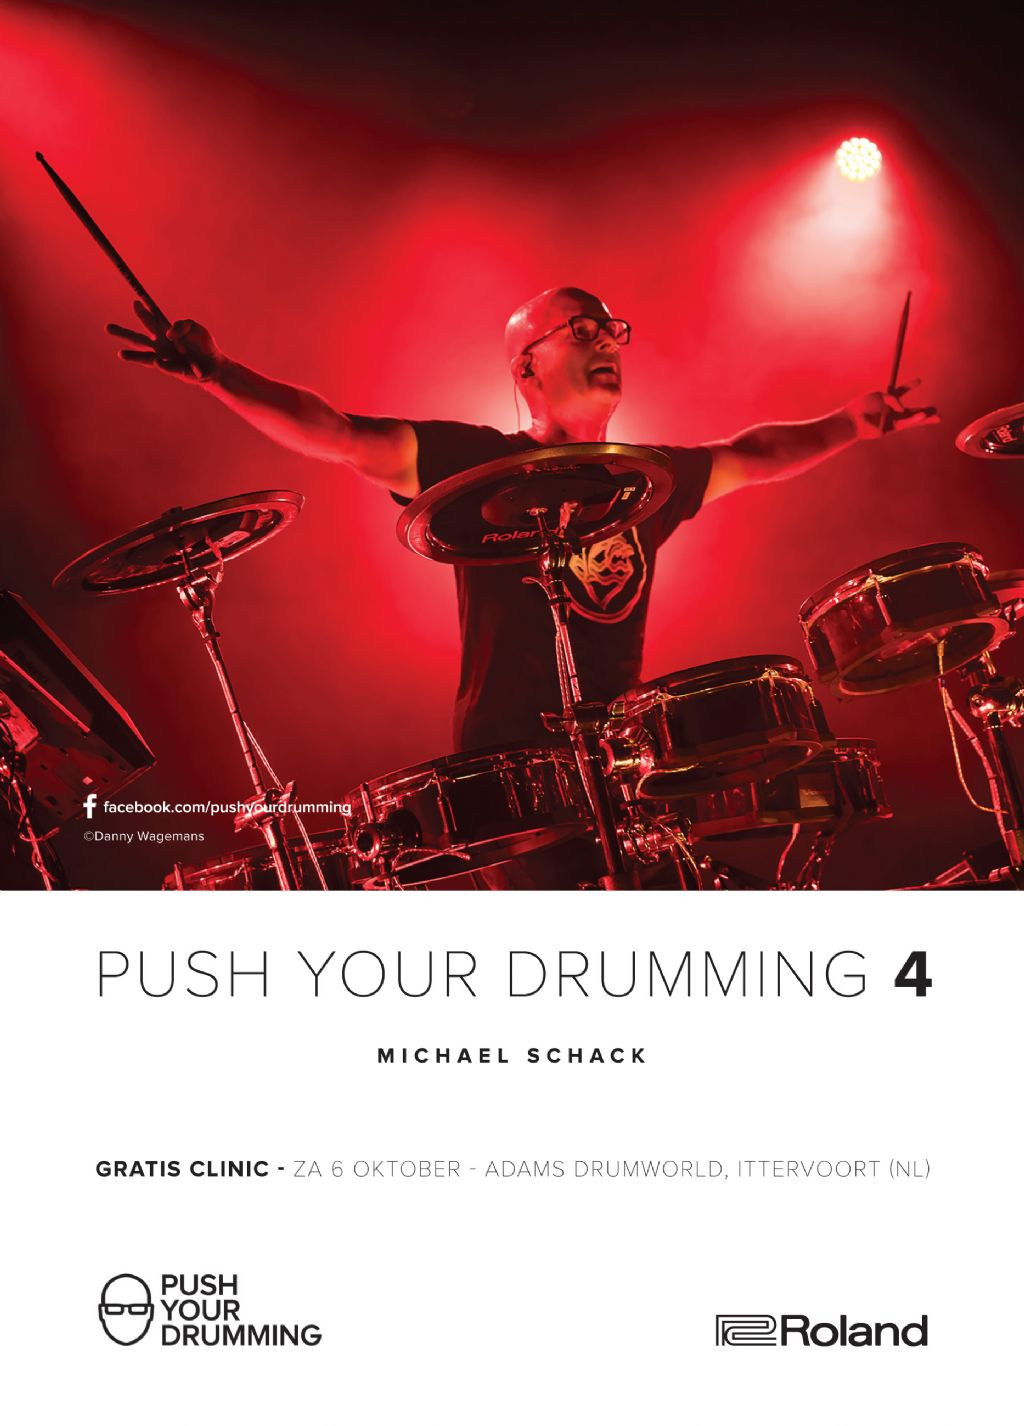 Push your drumming 4 - Roland